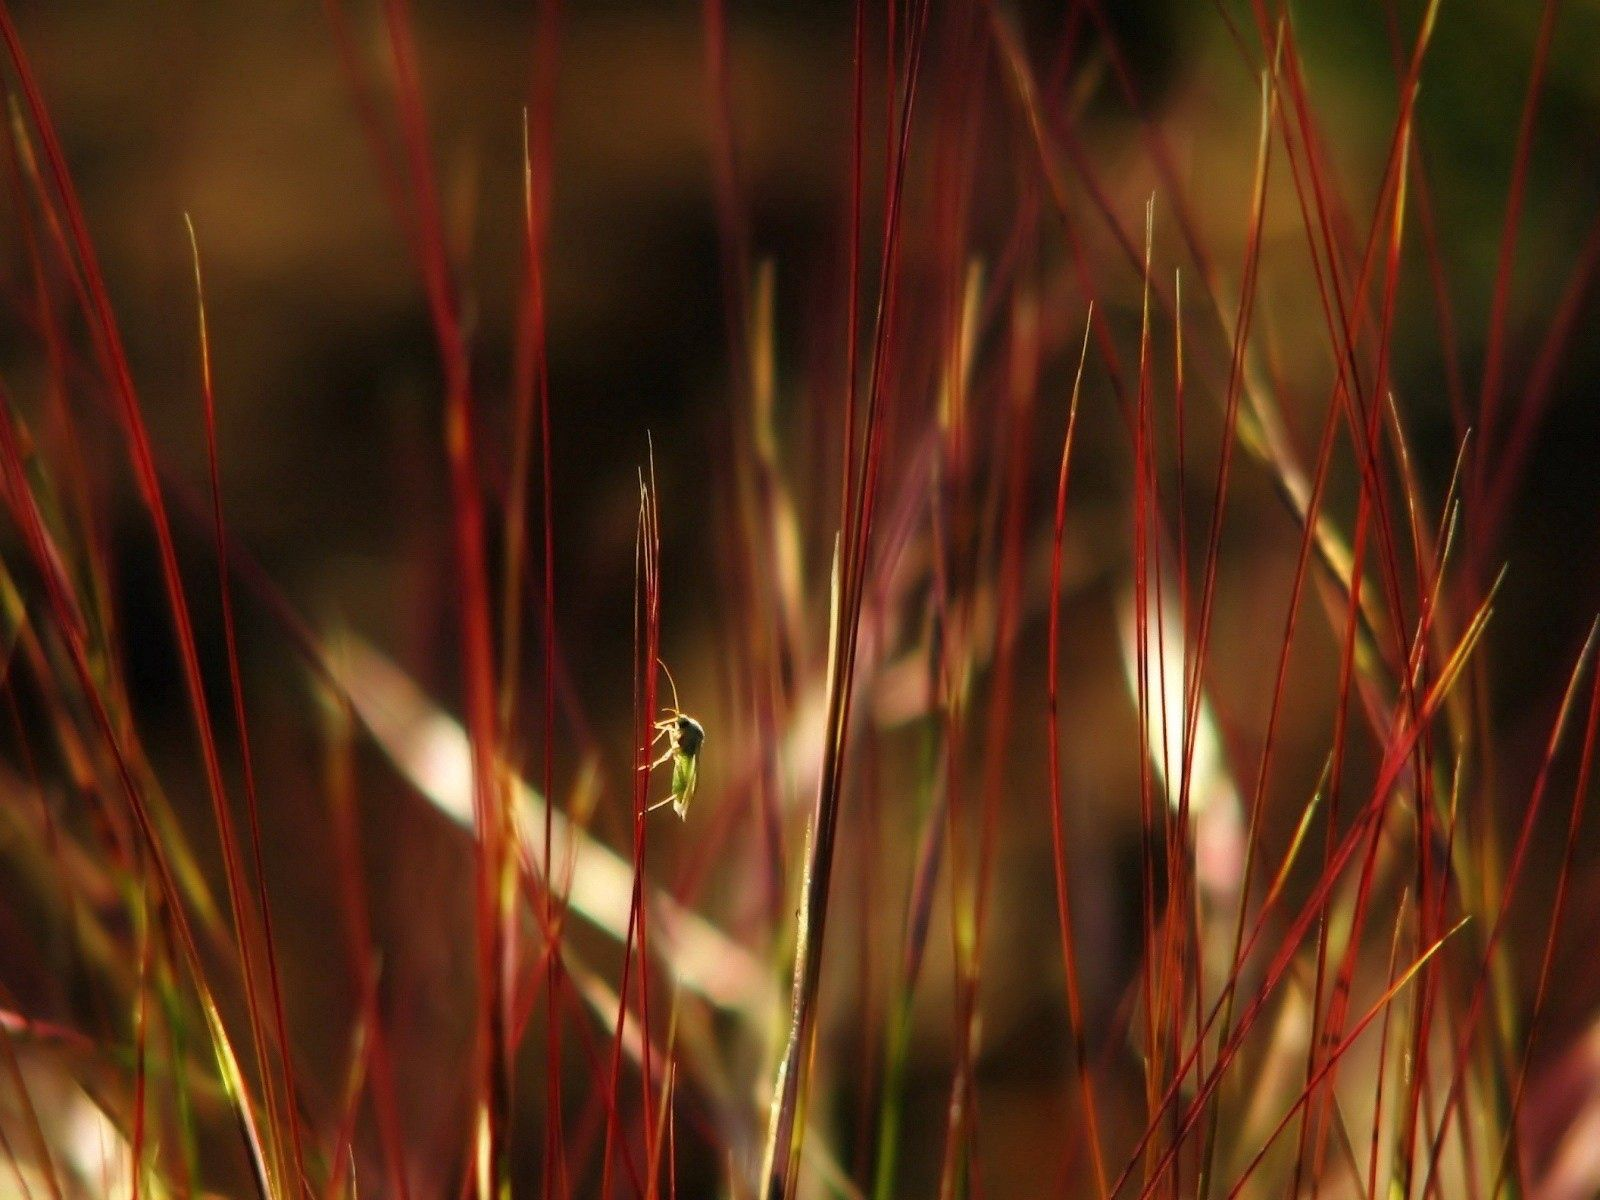 109993 download wallpaper Macro, Grass, Color, Dark, Insects screensavers and pictures for free